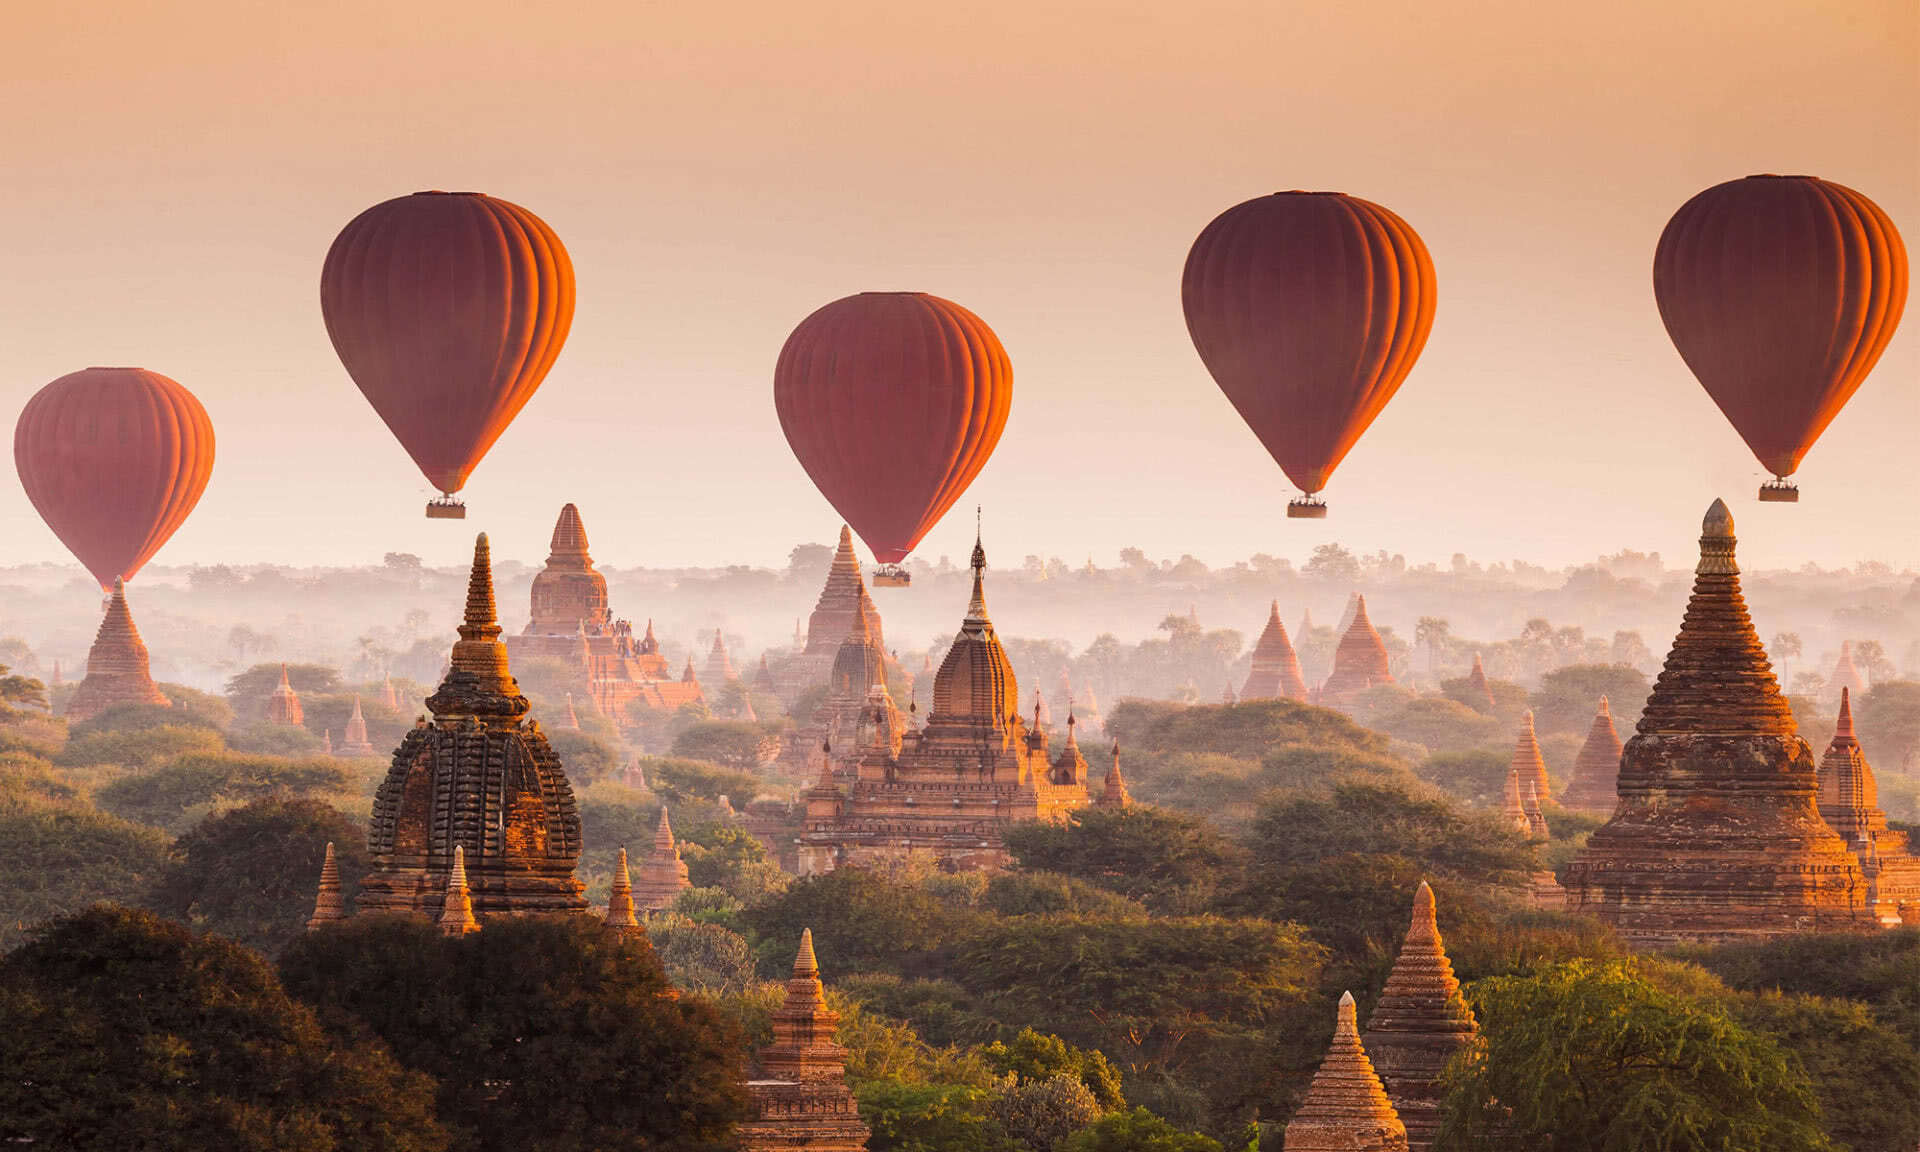 #BT Balloon Myanmar